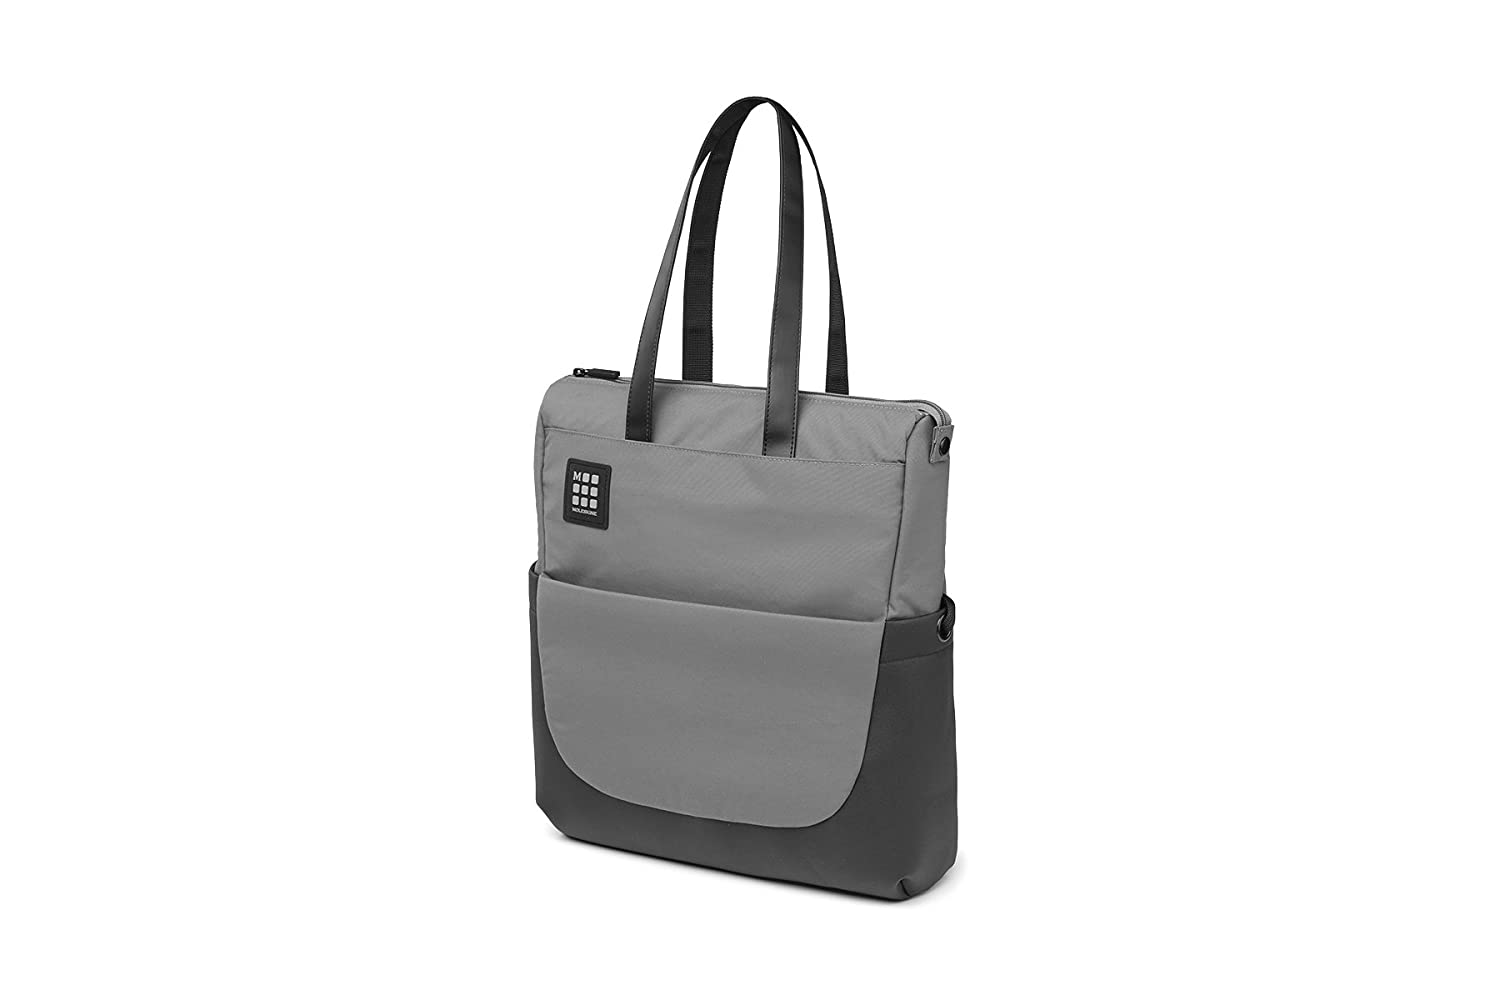 Amazon.com: Moleskine ID bolsa Bag, Gris pizarra: Computers ...